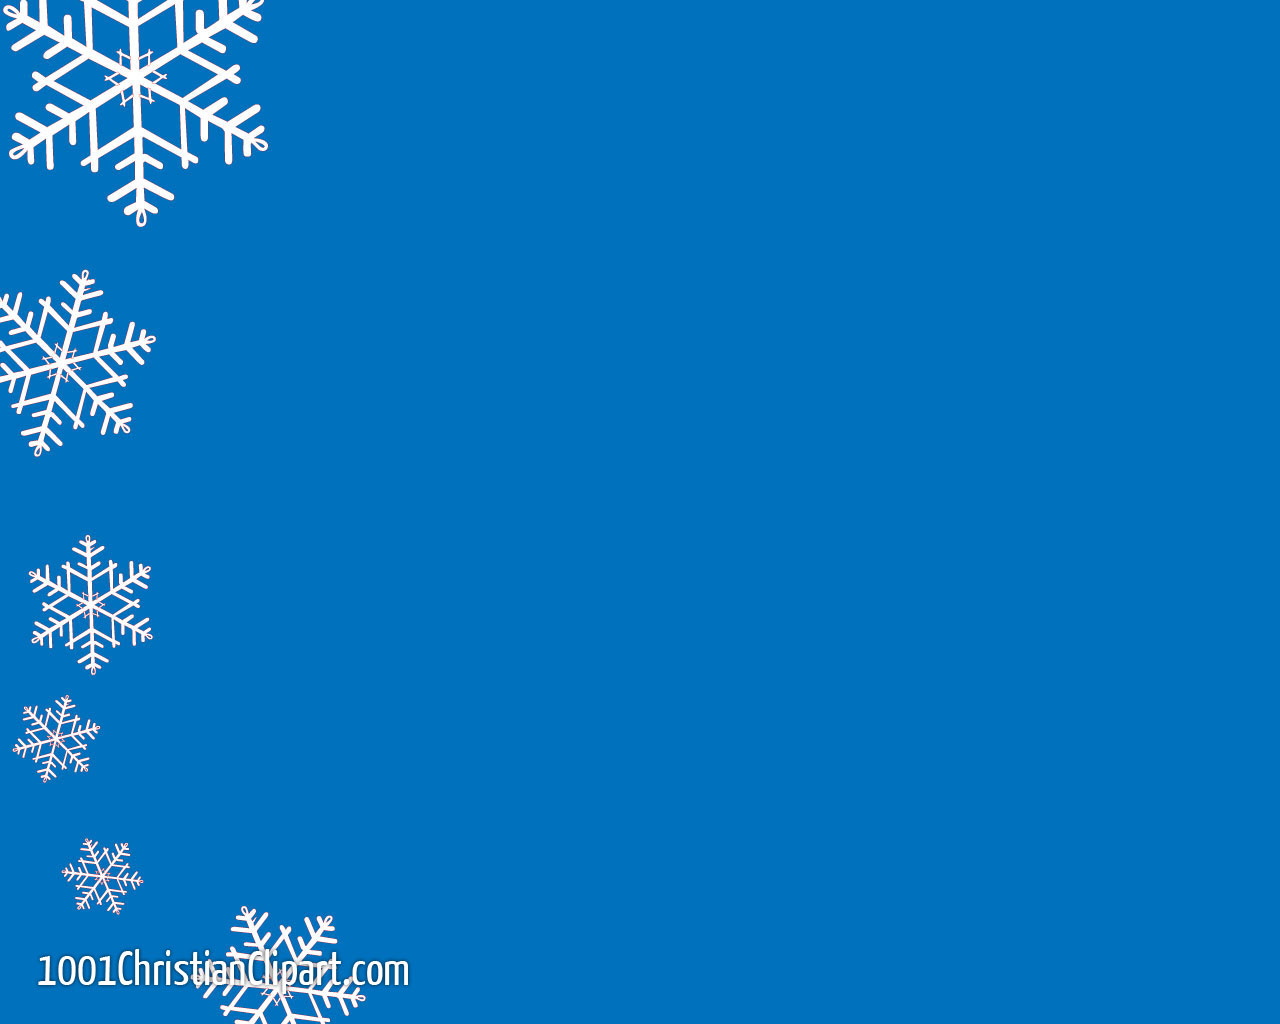 Free christmas powerpoint 1001 christian clipart for Free christmas powerpoint templates